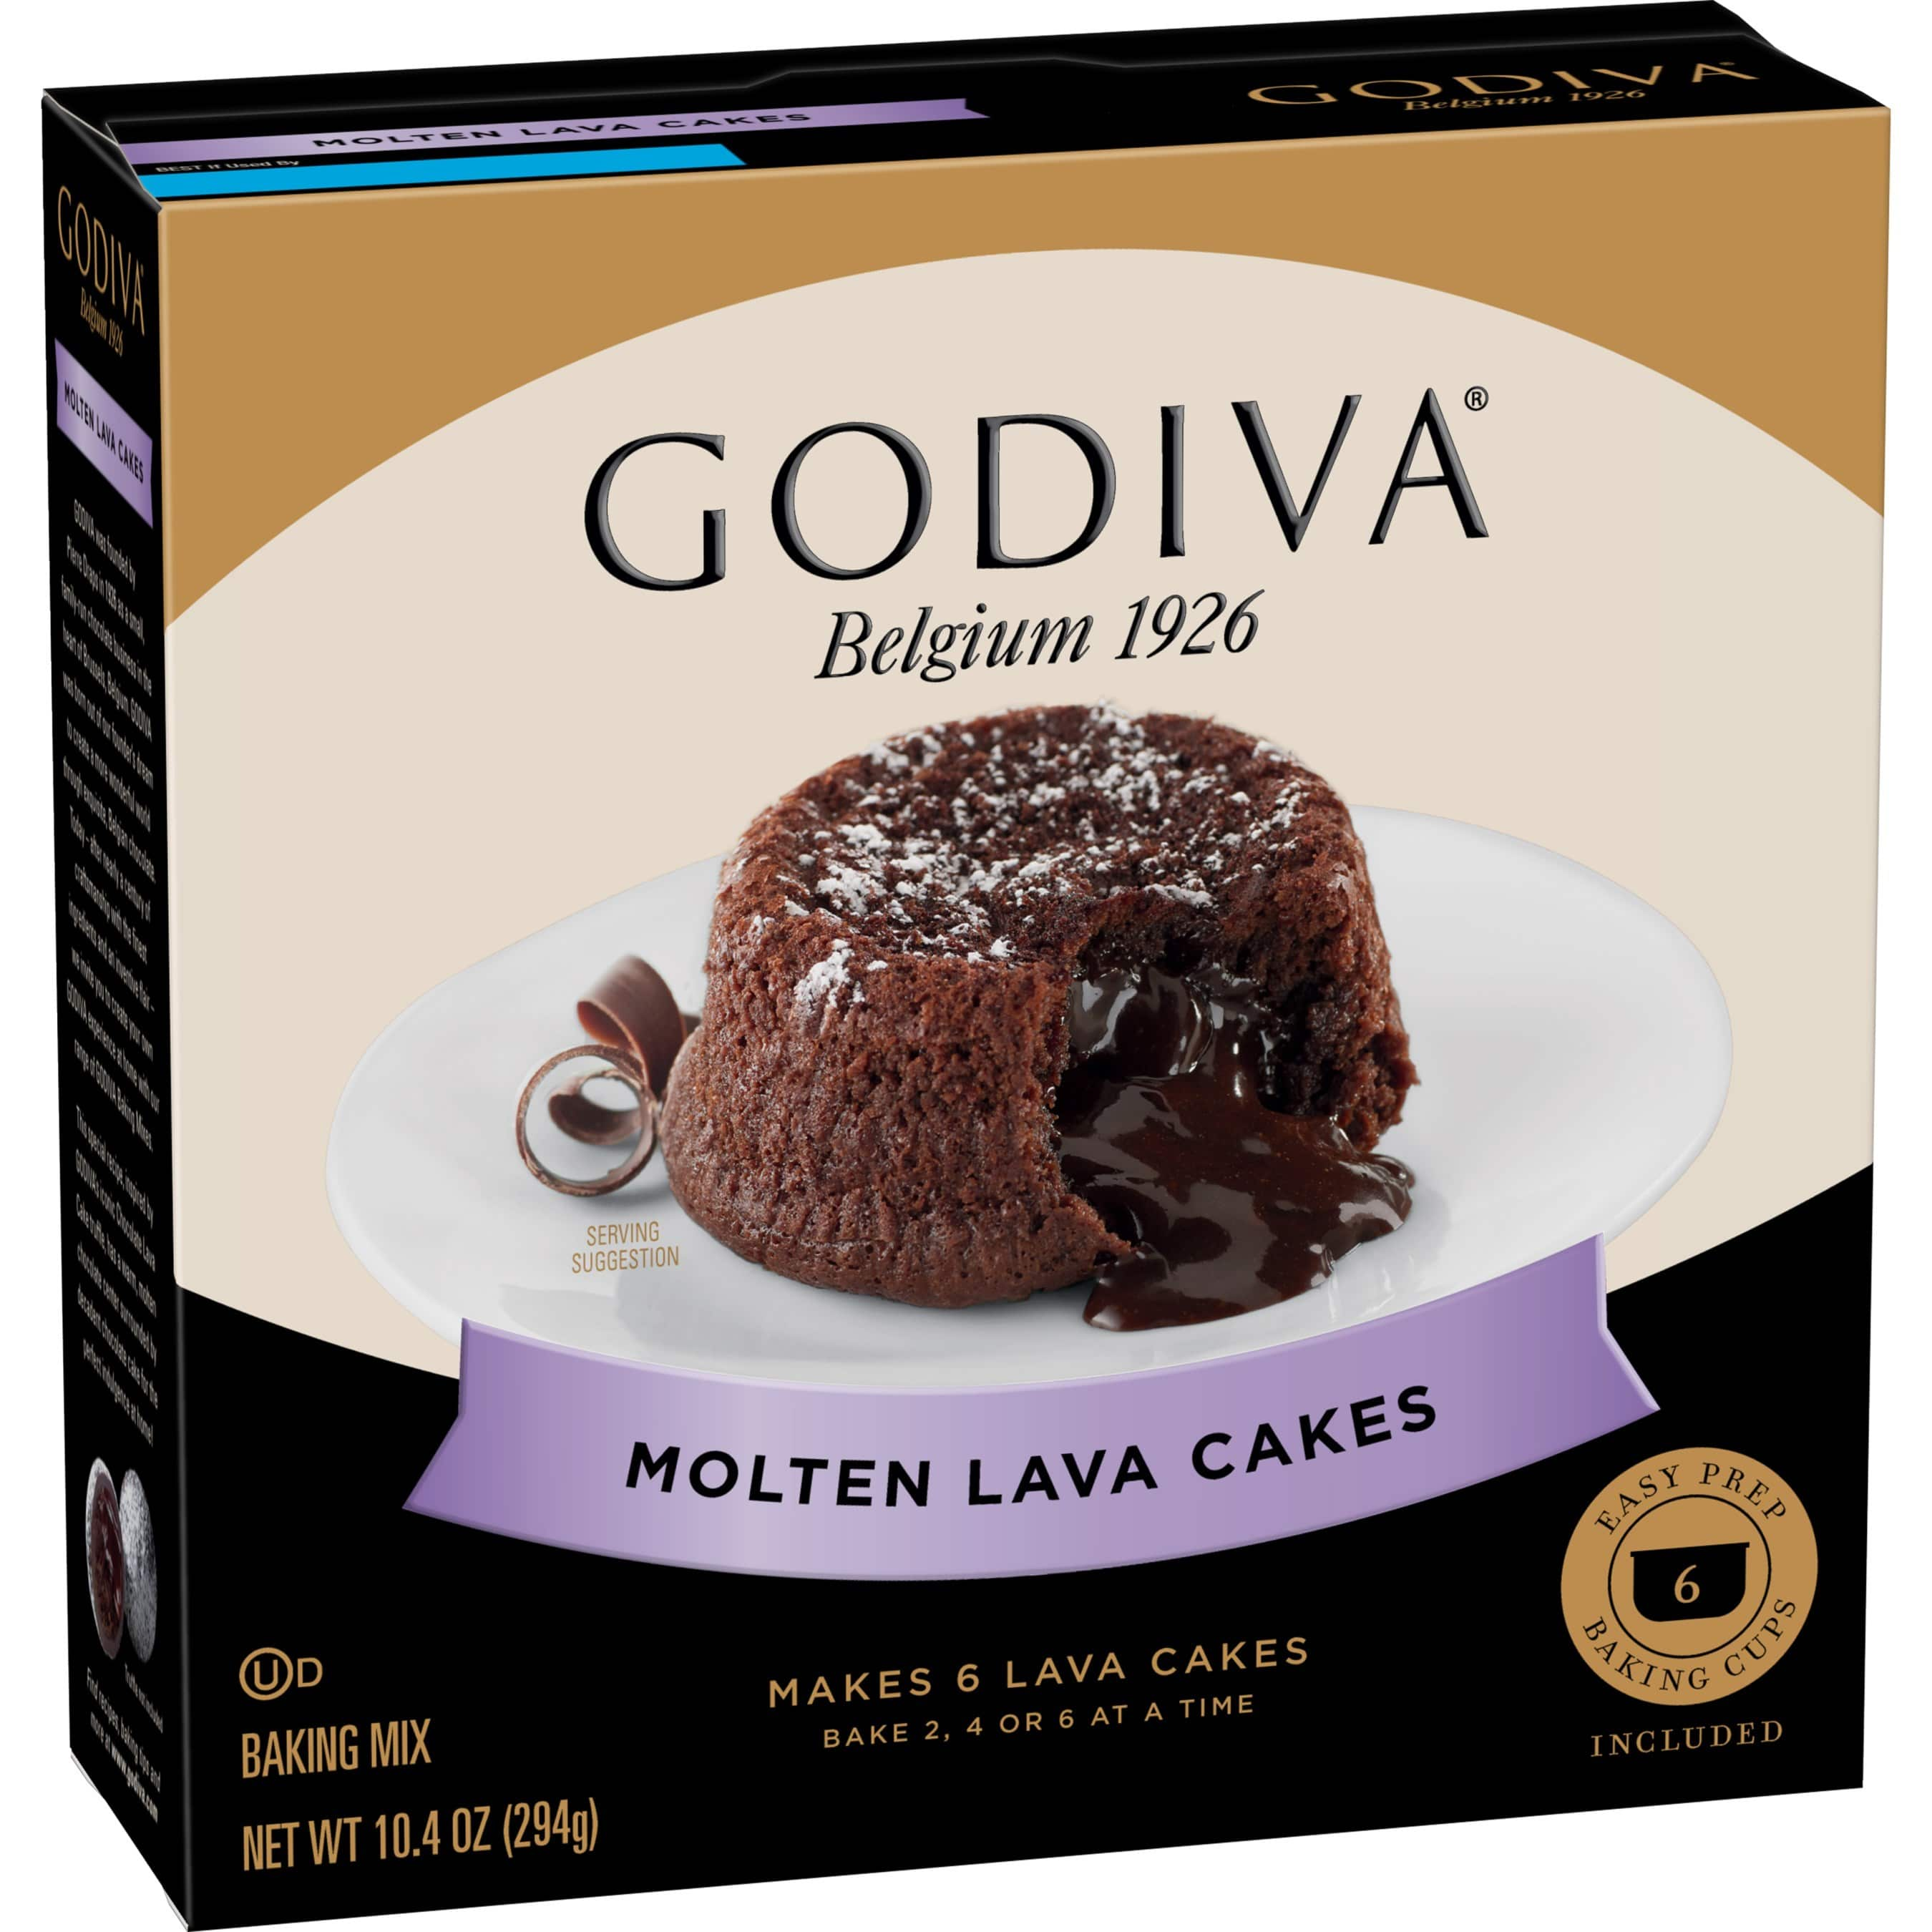 GODIVA Partners With General Mills to Launch Premium Baking Mixes